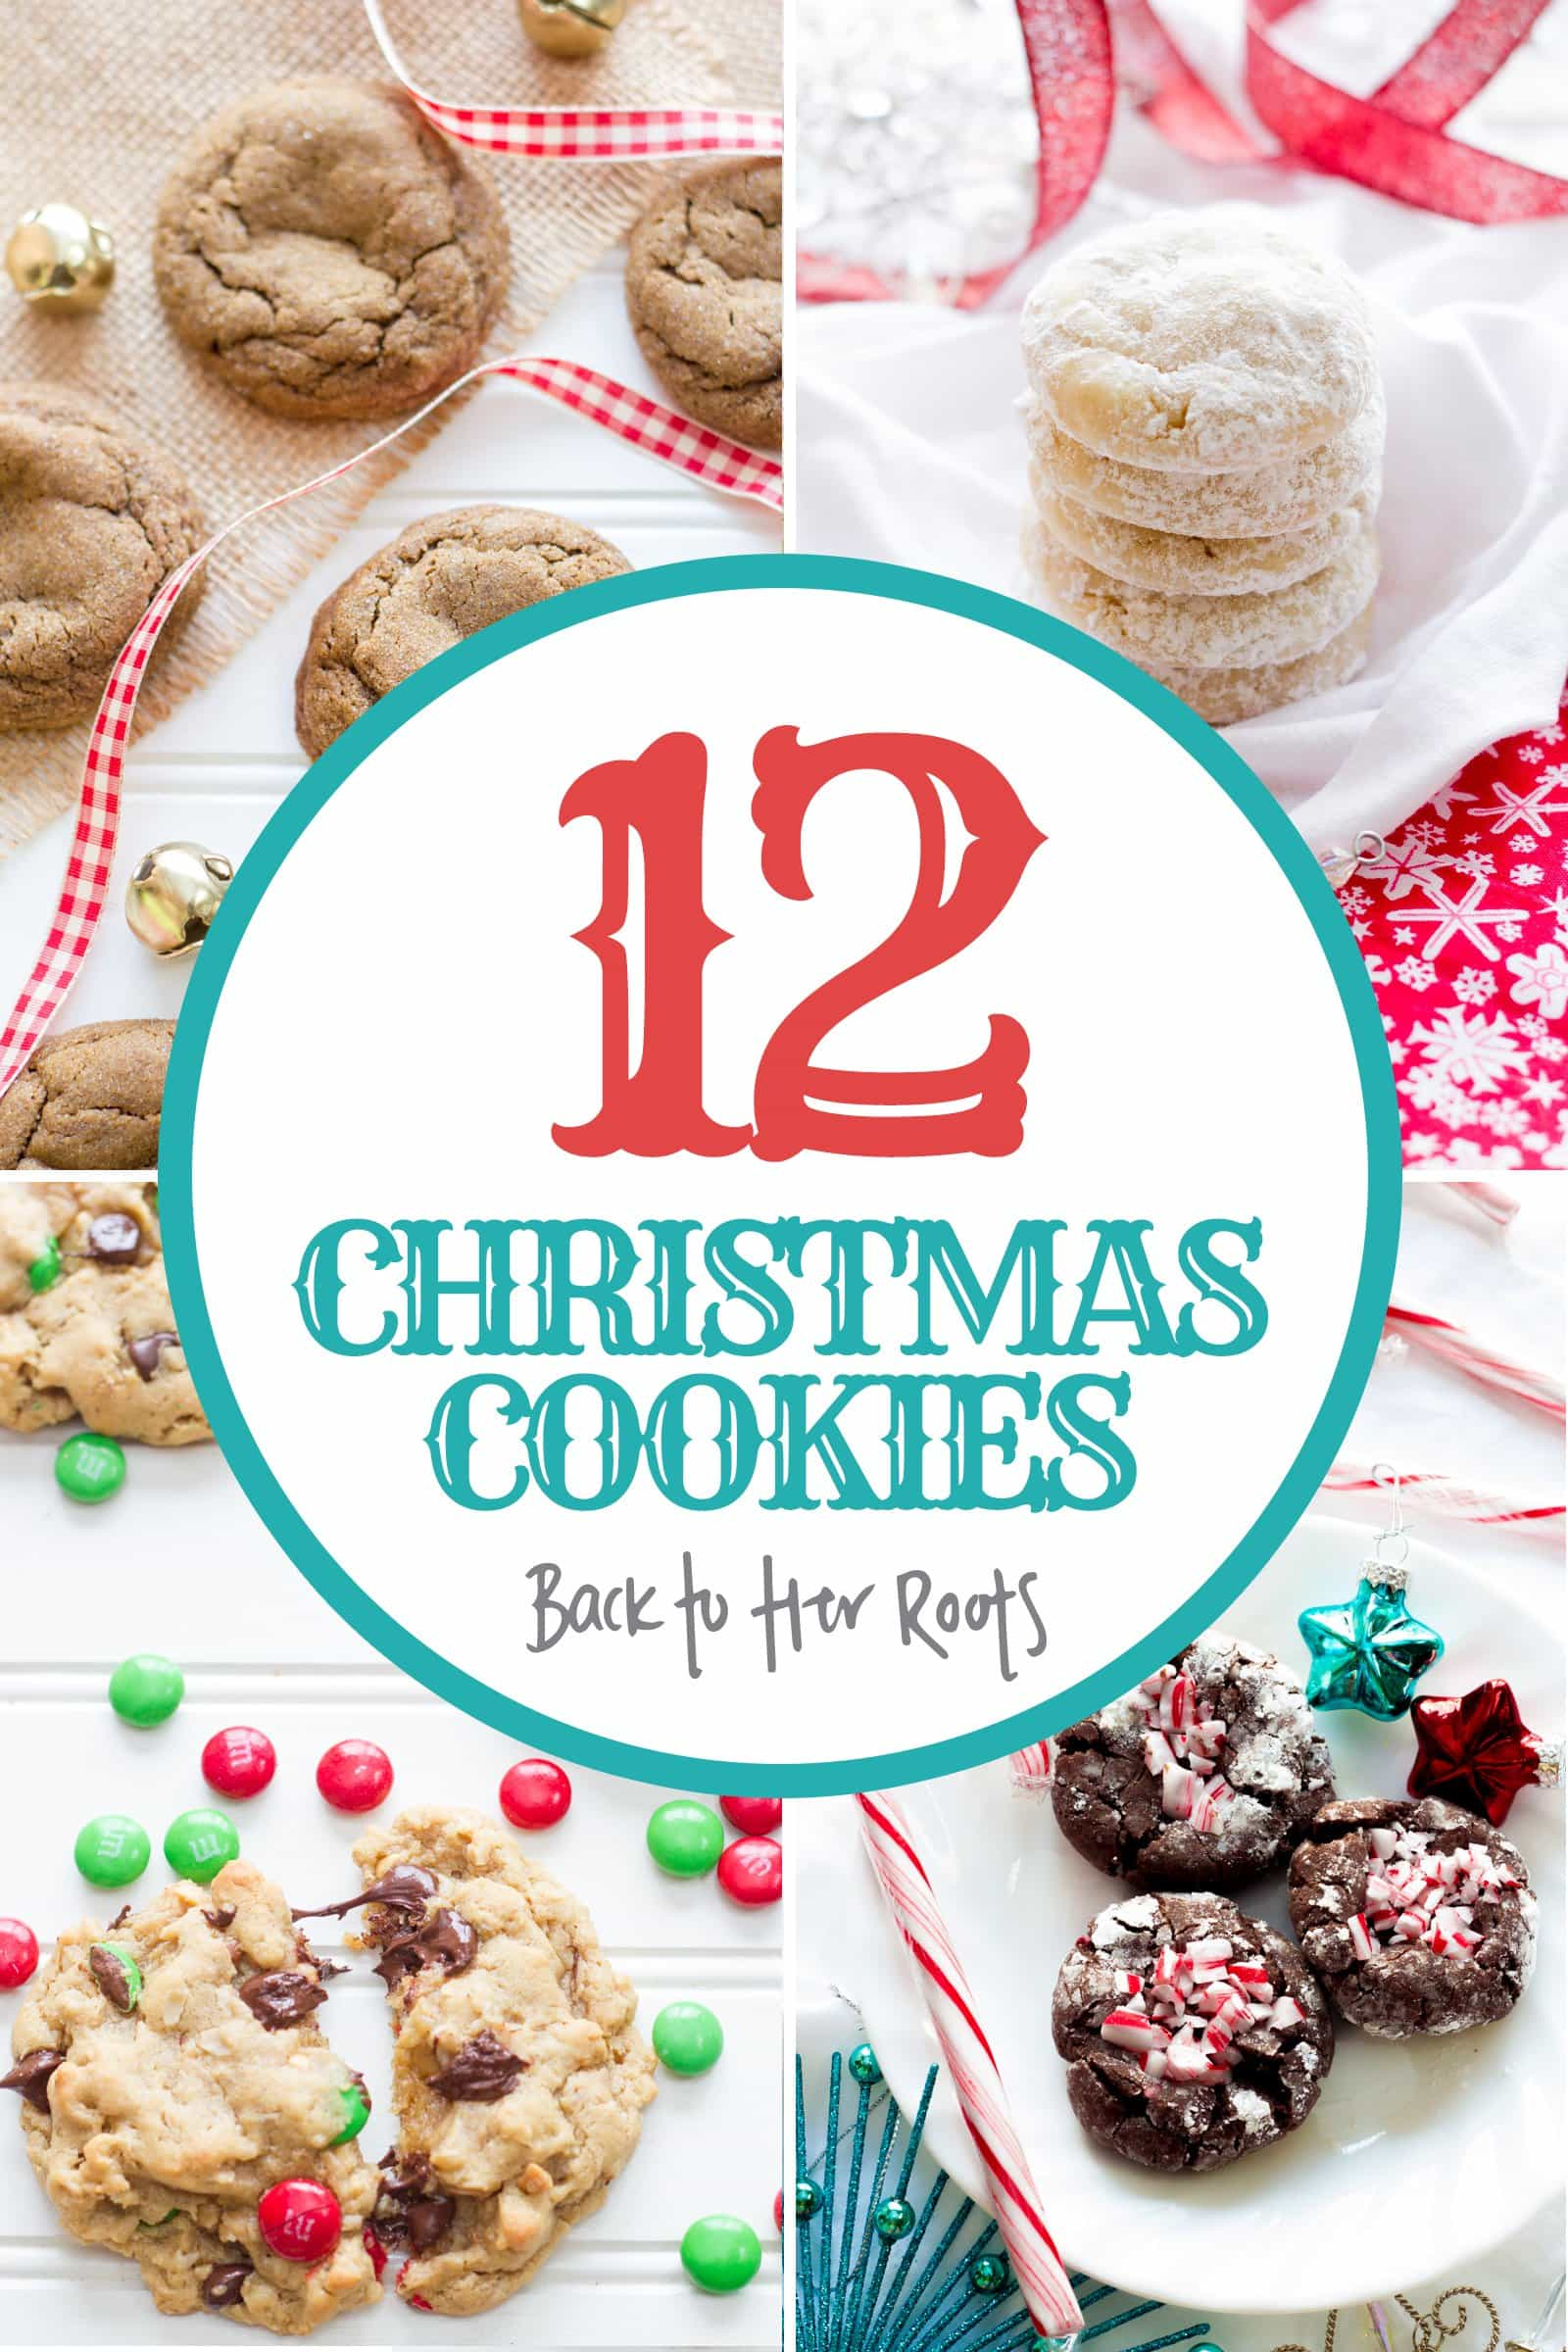 12 Christmas Cookie Recipes from Wholefully